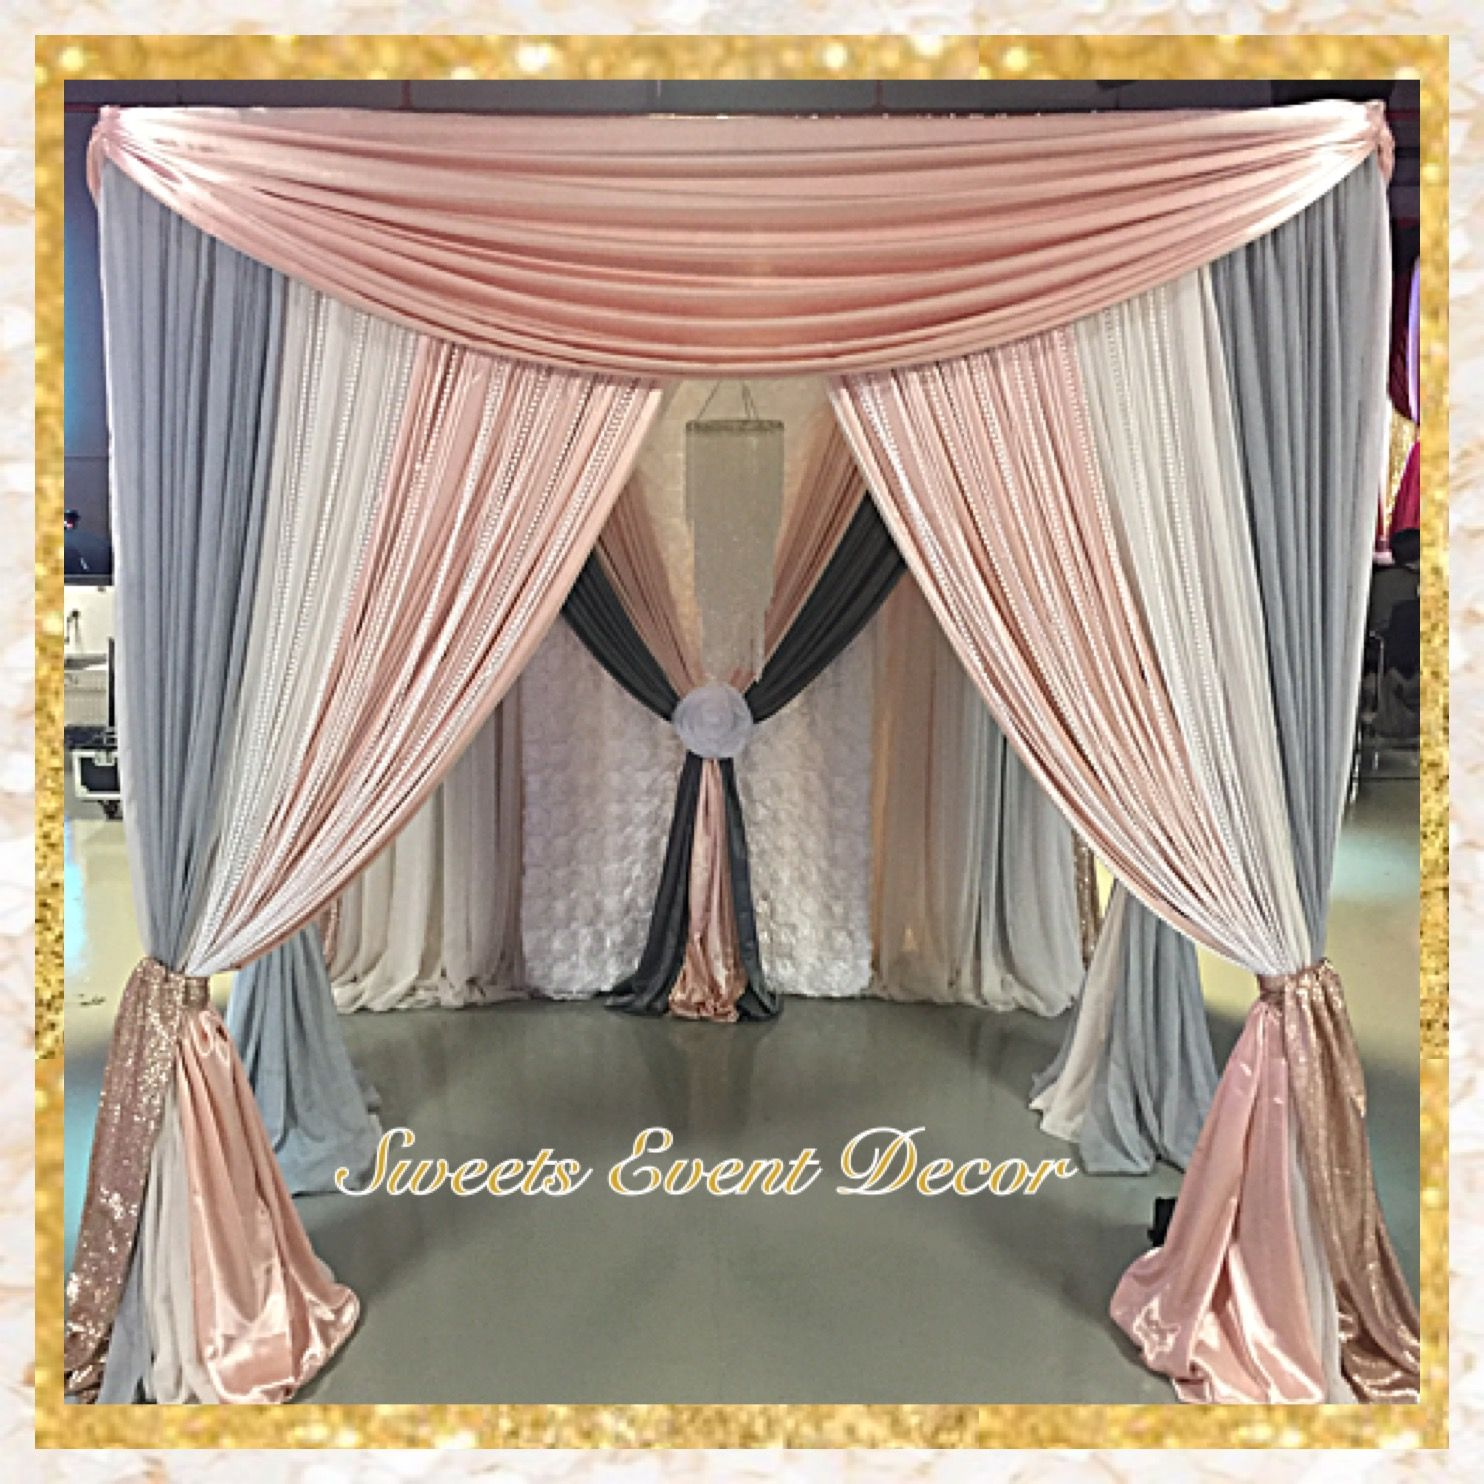 Wedding Canopy Decor by Sweets Event Decor| Tent Draping | Fabric Draping | Fabric & Wedding Canopy Decor by: Sweets Event Decor| Tent Draping | Fabric ...